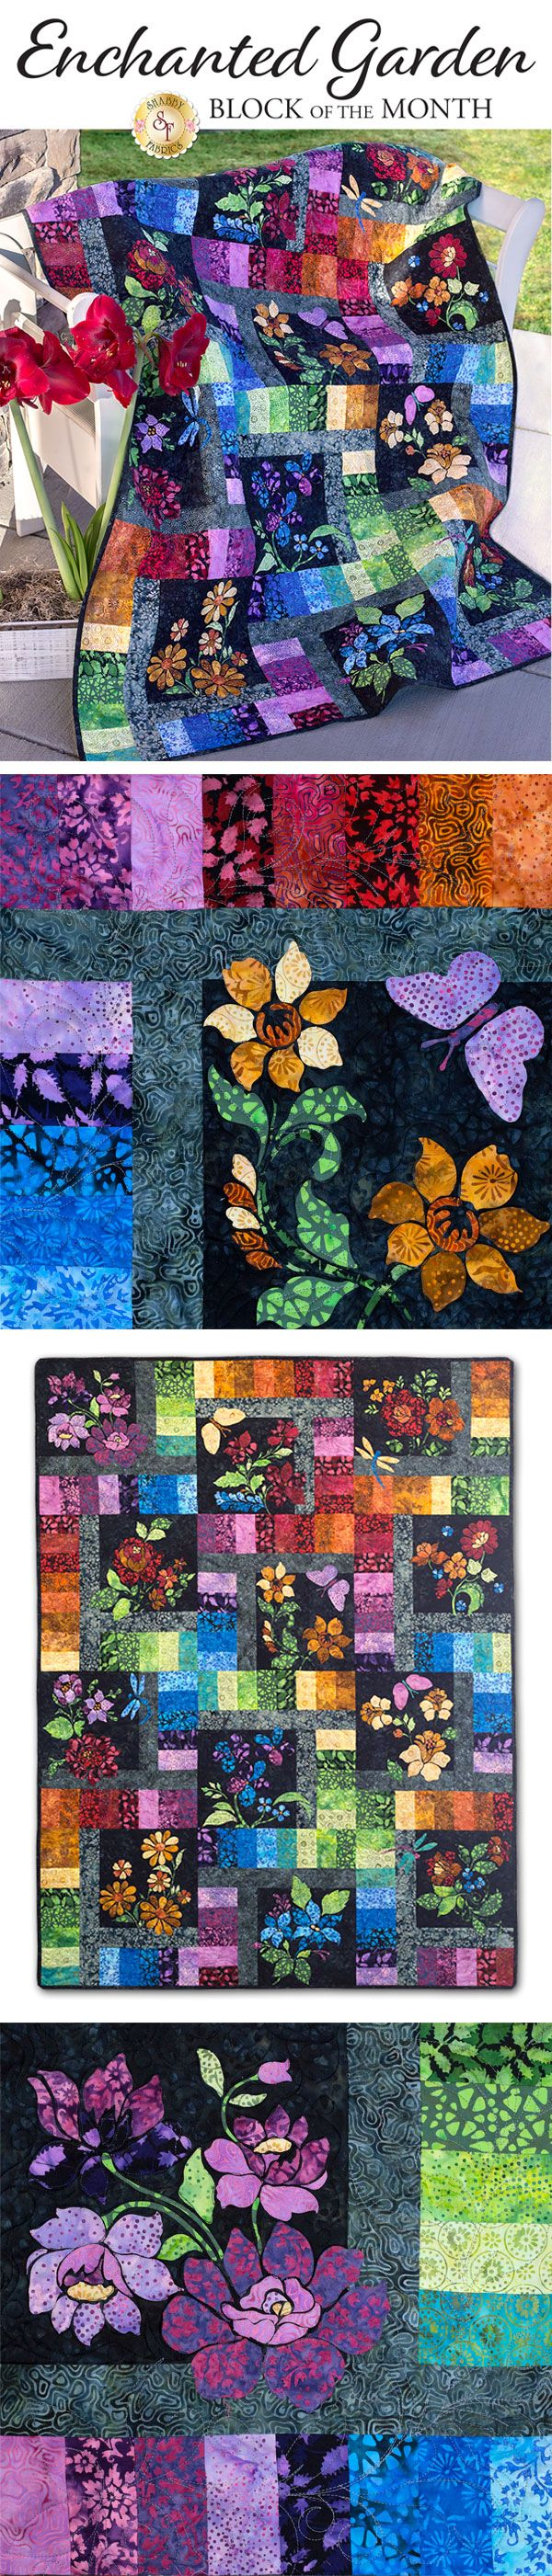 Enchanted Garden BOM - Pre-Fused & Laser-Cut Bring the magic and beauty of a flower garden to your home with the stunning, Enchanted Garden Block of the Month! This radiant quilt was designed by In The Beginning Fabrics and features vibrantly colored batik fabrics and detailed appliqué flowers that create a dynamic look against the textured black backgrounds. This eye-catching quilt is sure to be admired wherever it is displayed!